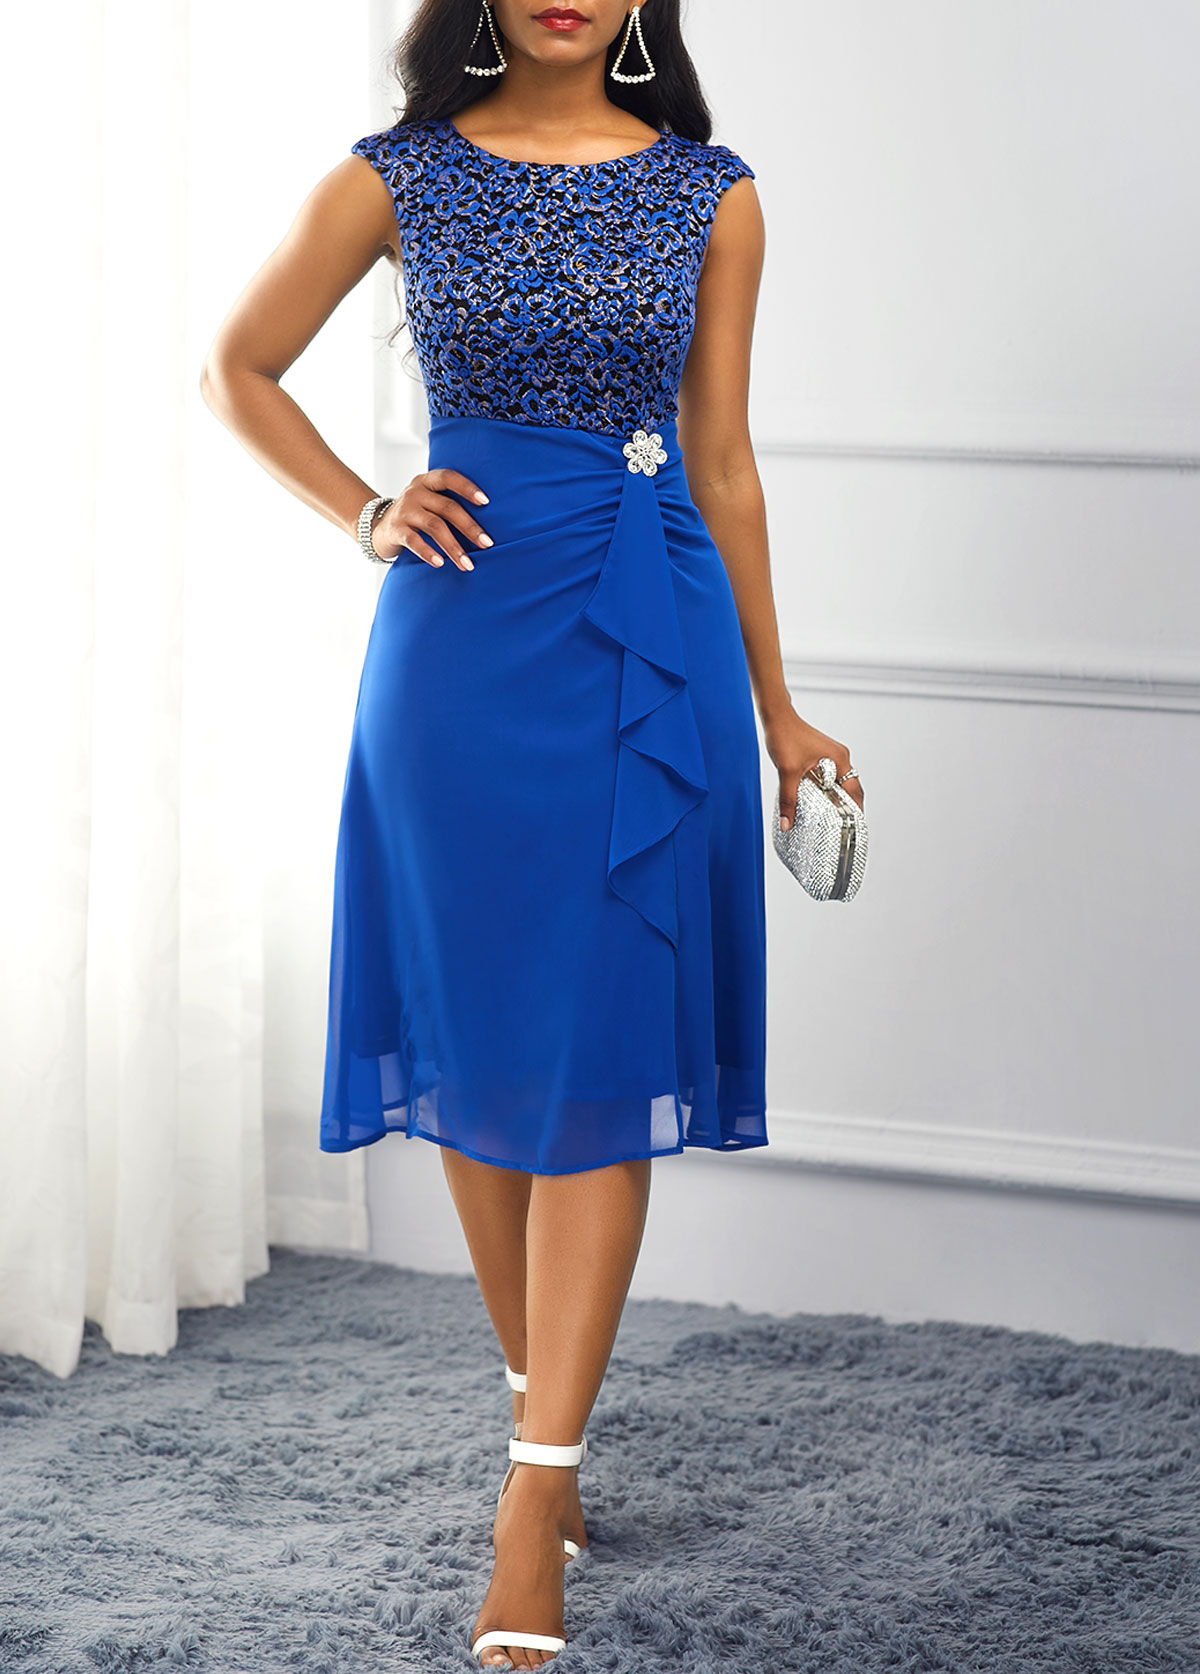 Royal Blue High Waist Rhinestone Embellished Dress